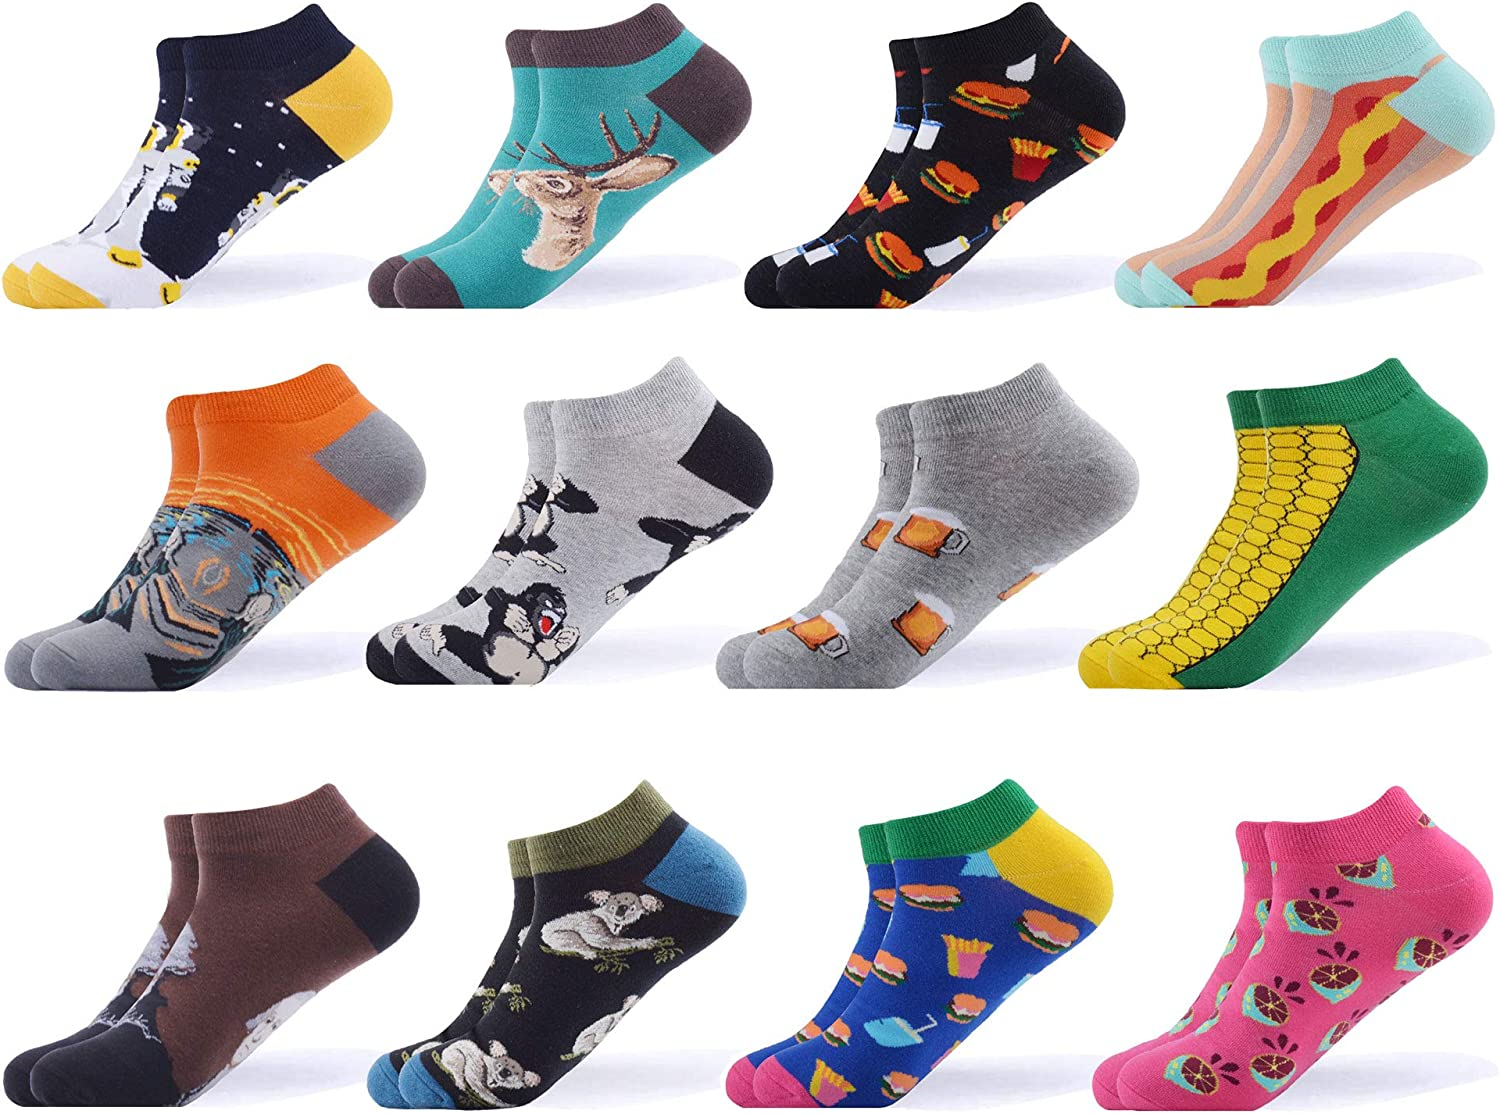 WeciBor Men's Dress Cool Colorful Fancy Novelty Funny Casual Combed Cotton Ankle Socks Pack